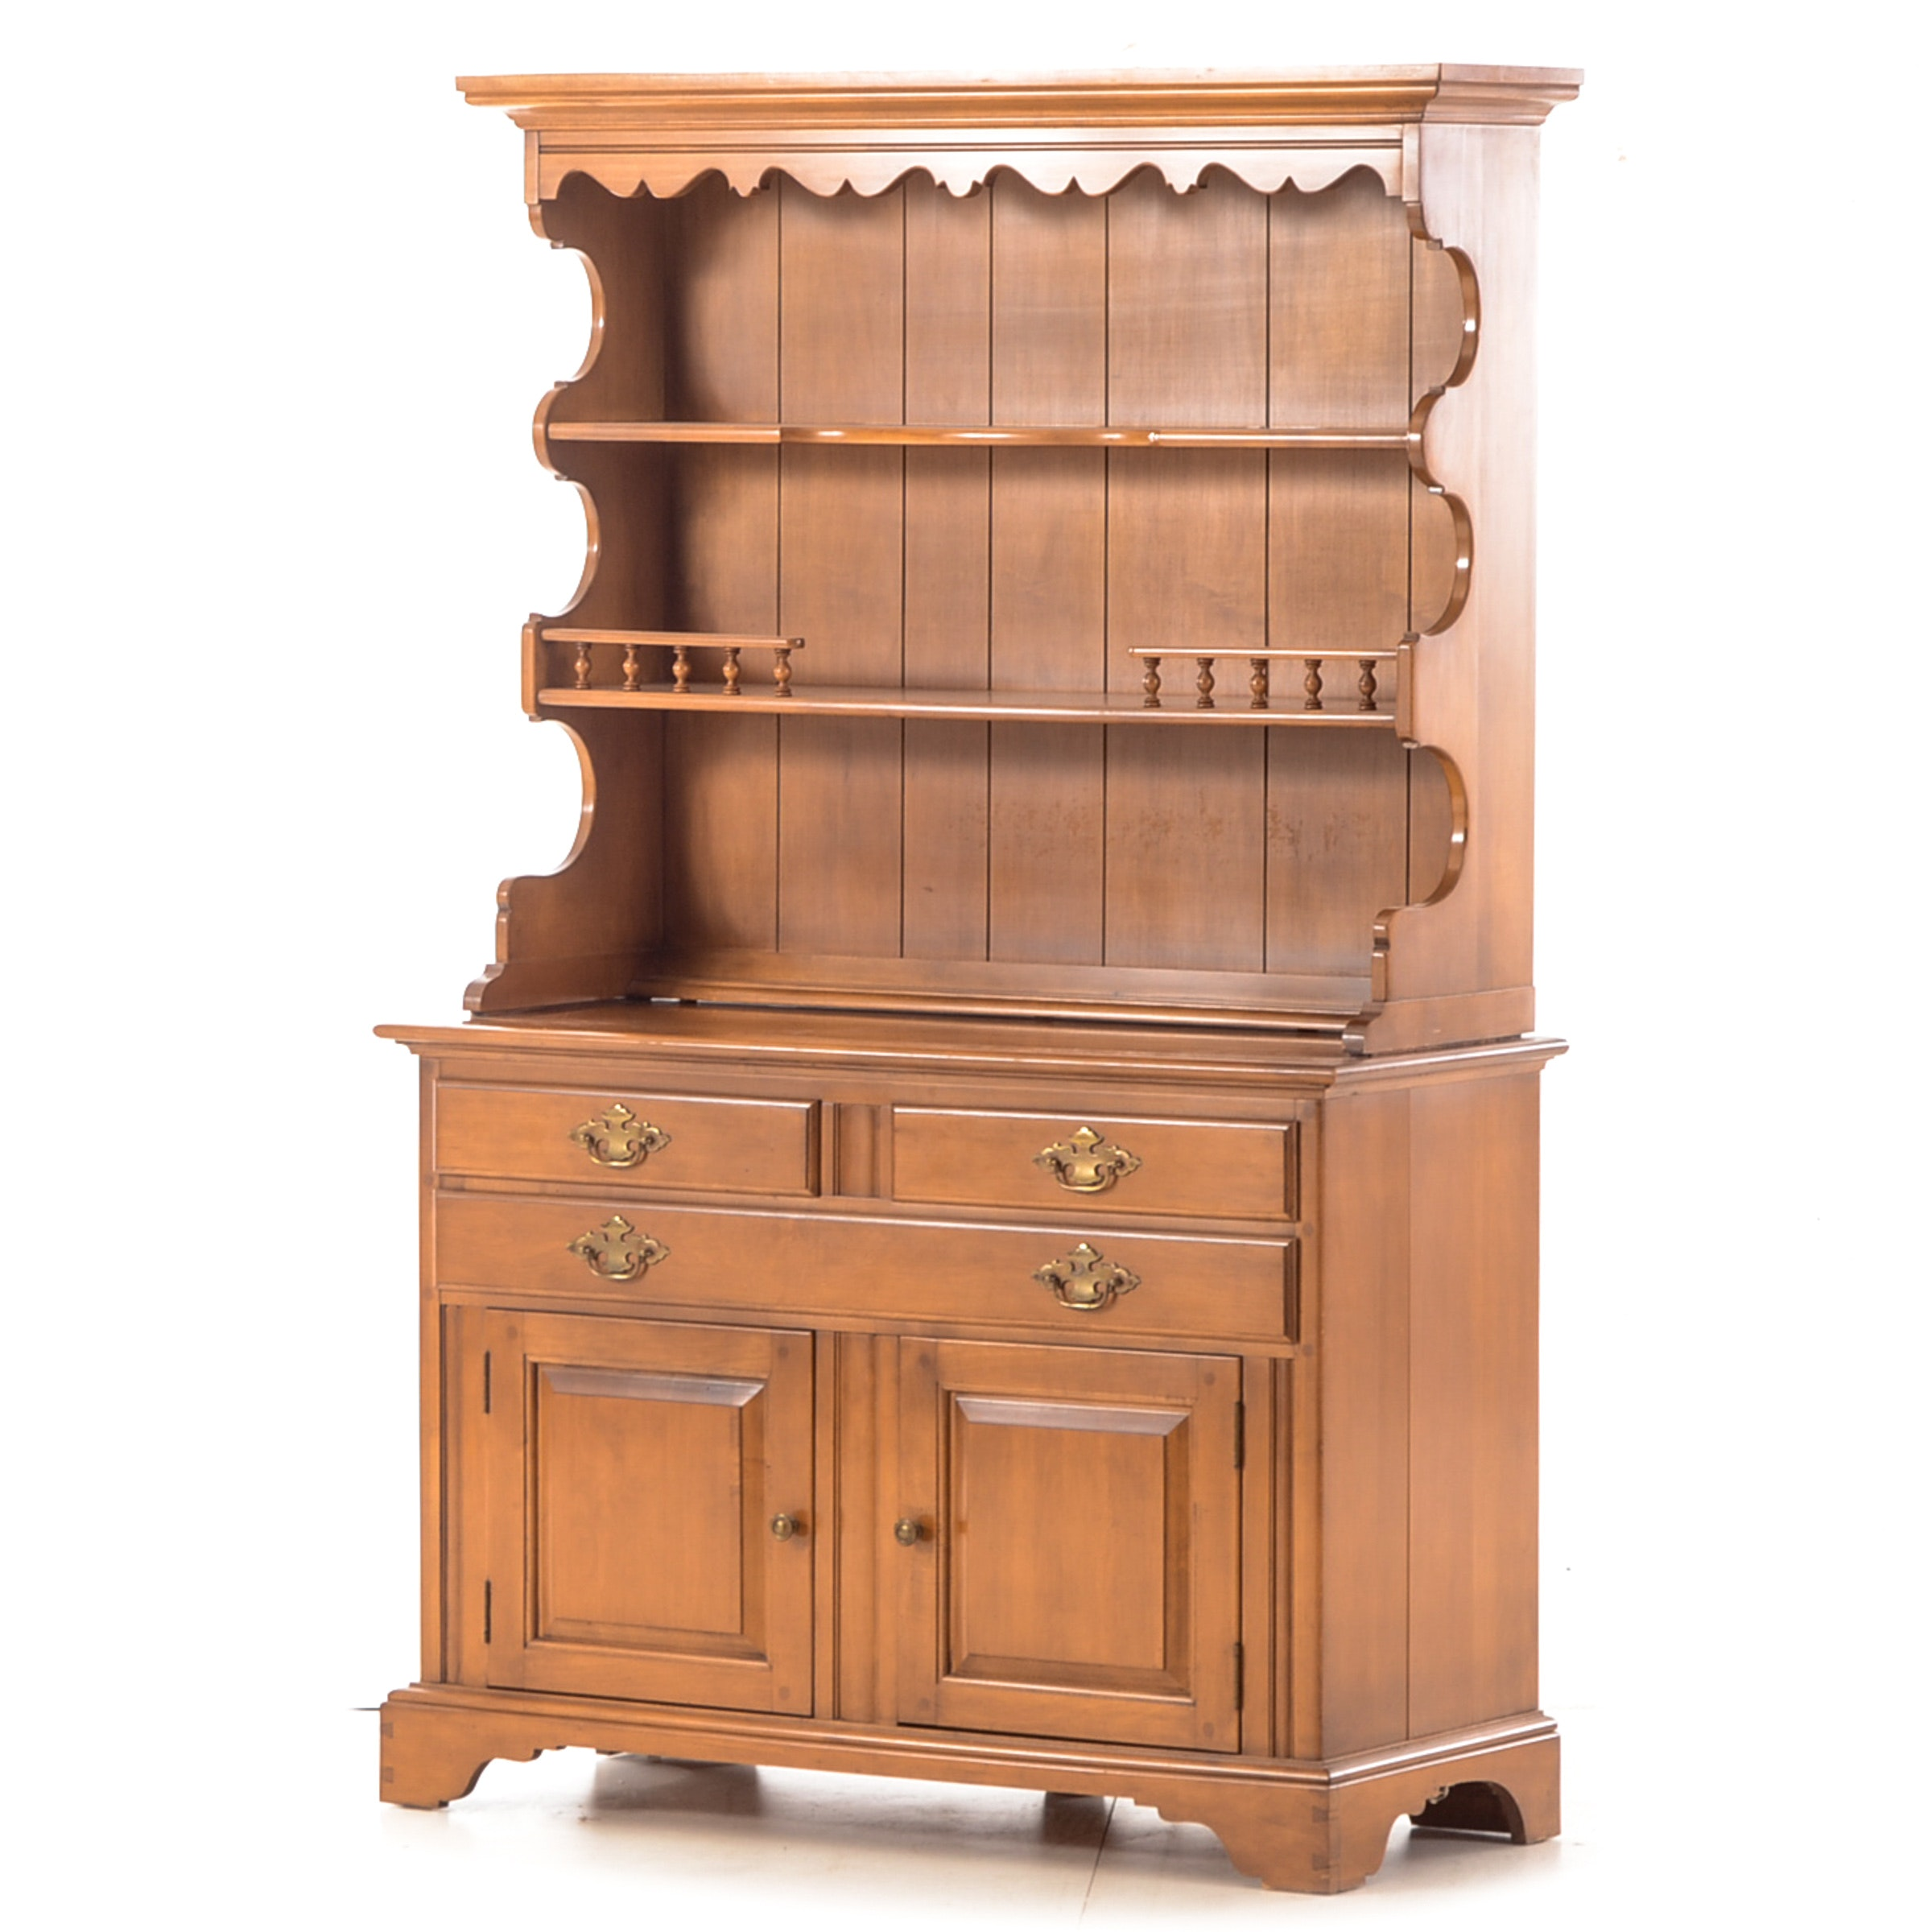 Vintage Cupboard by Willet Furniture